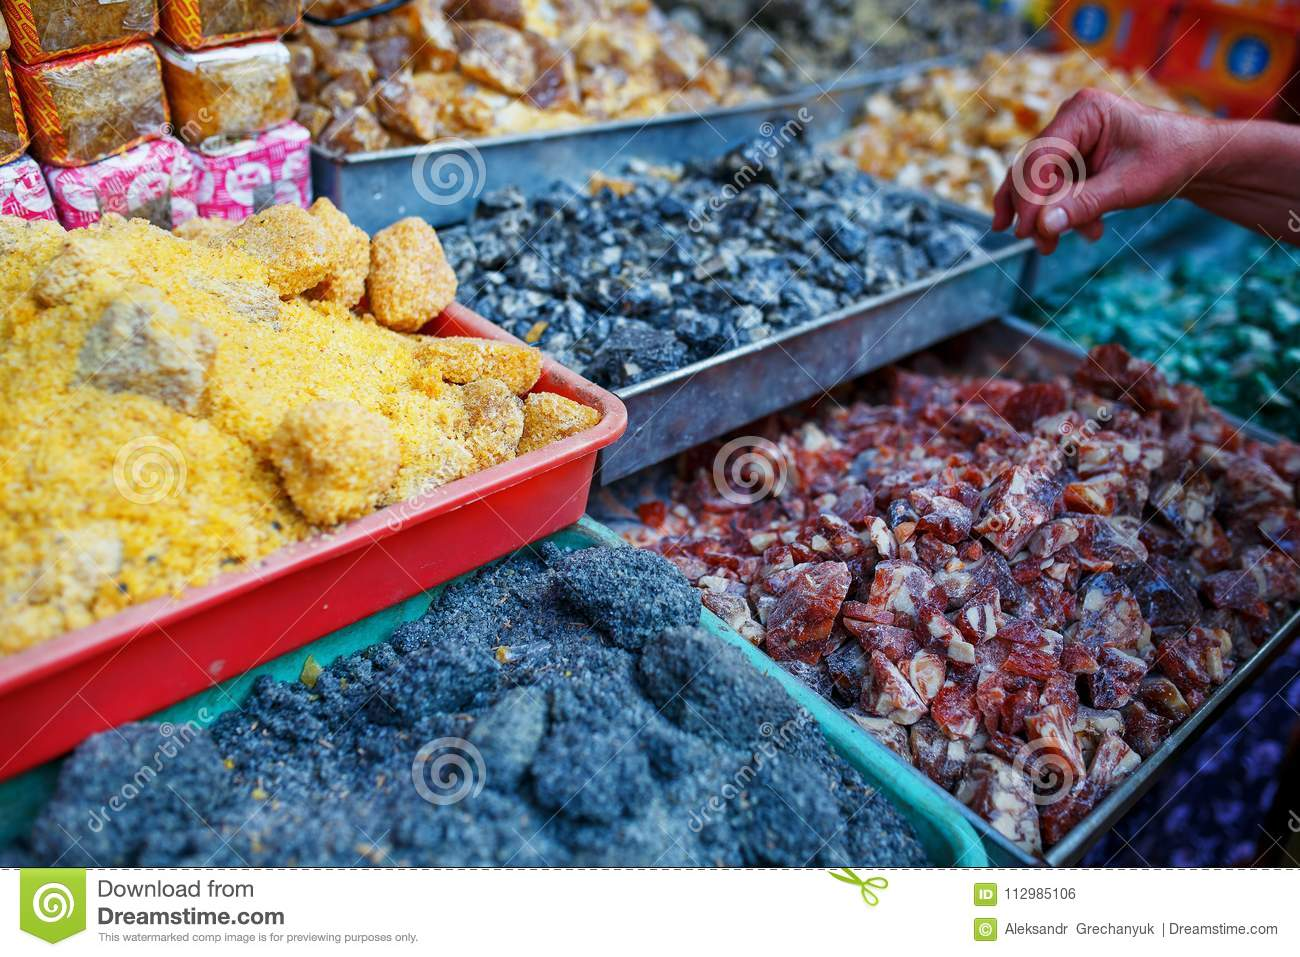 Sale of spices in the markets of Goa and other states